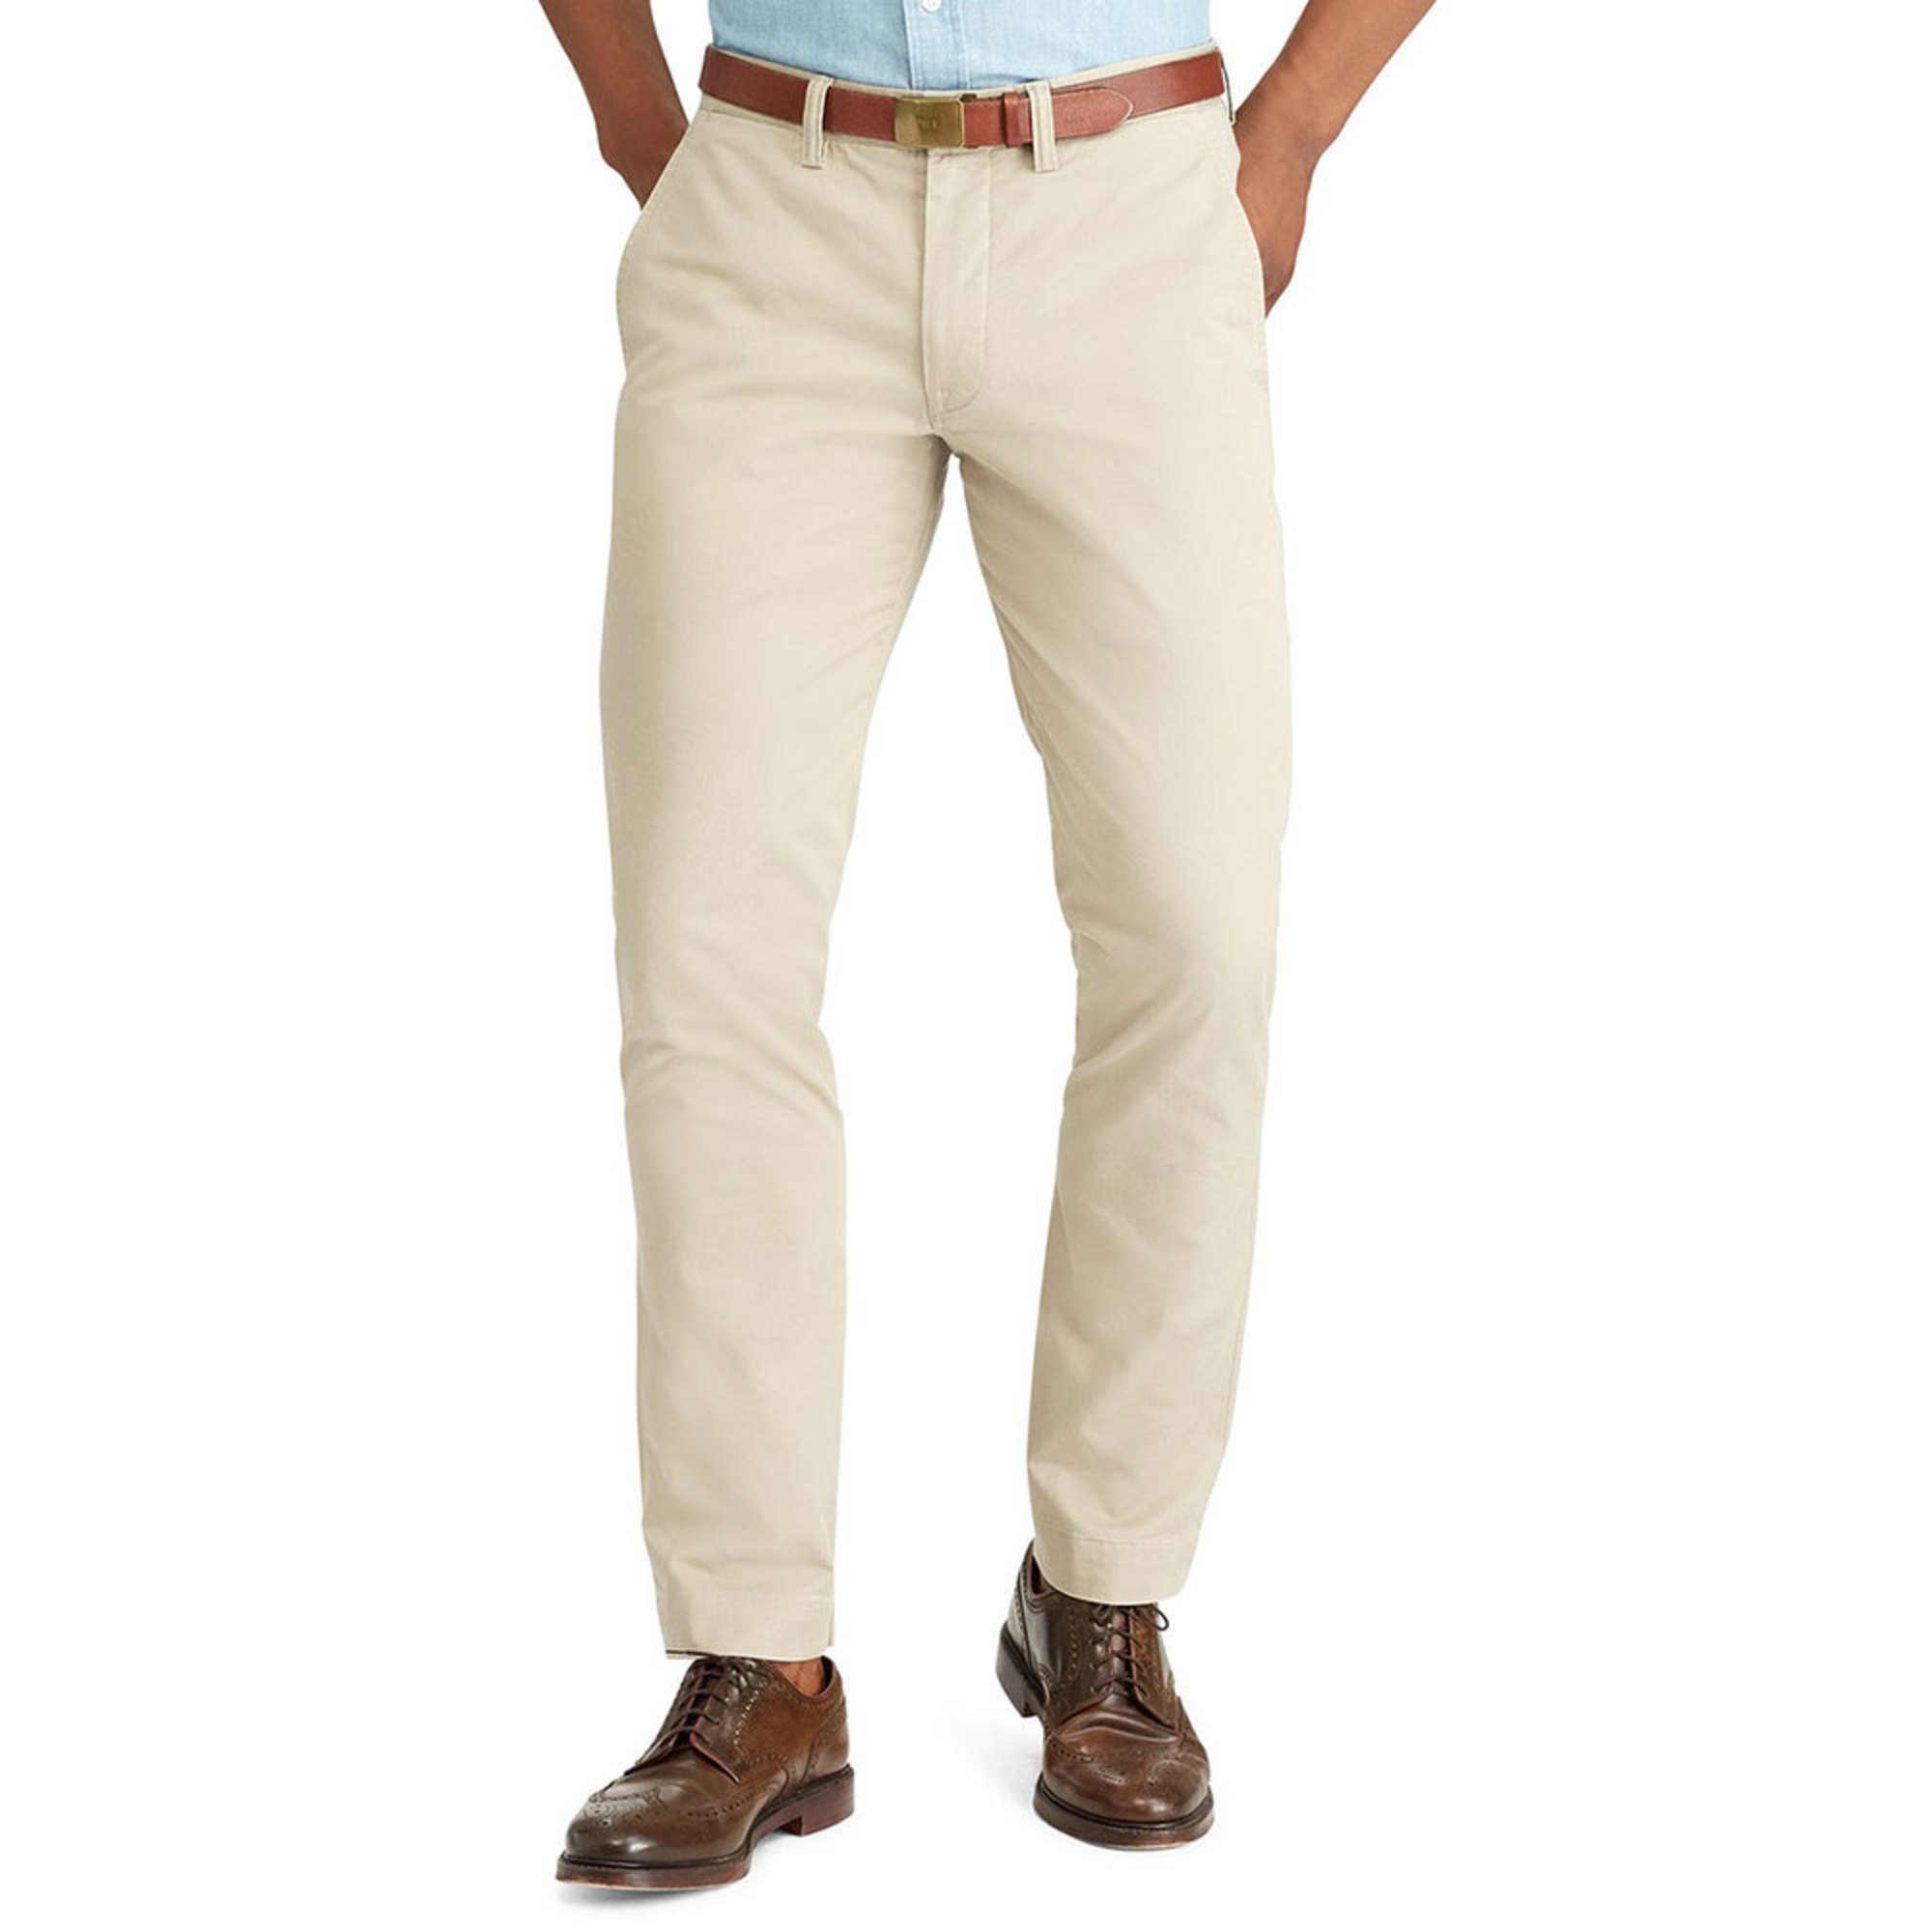 de20e7791a Polo Ralph Lauren Men's Bedford Straight Fit Pants in Khaki Tan